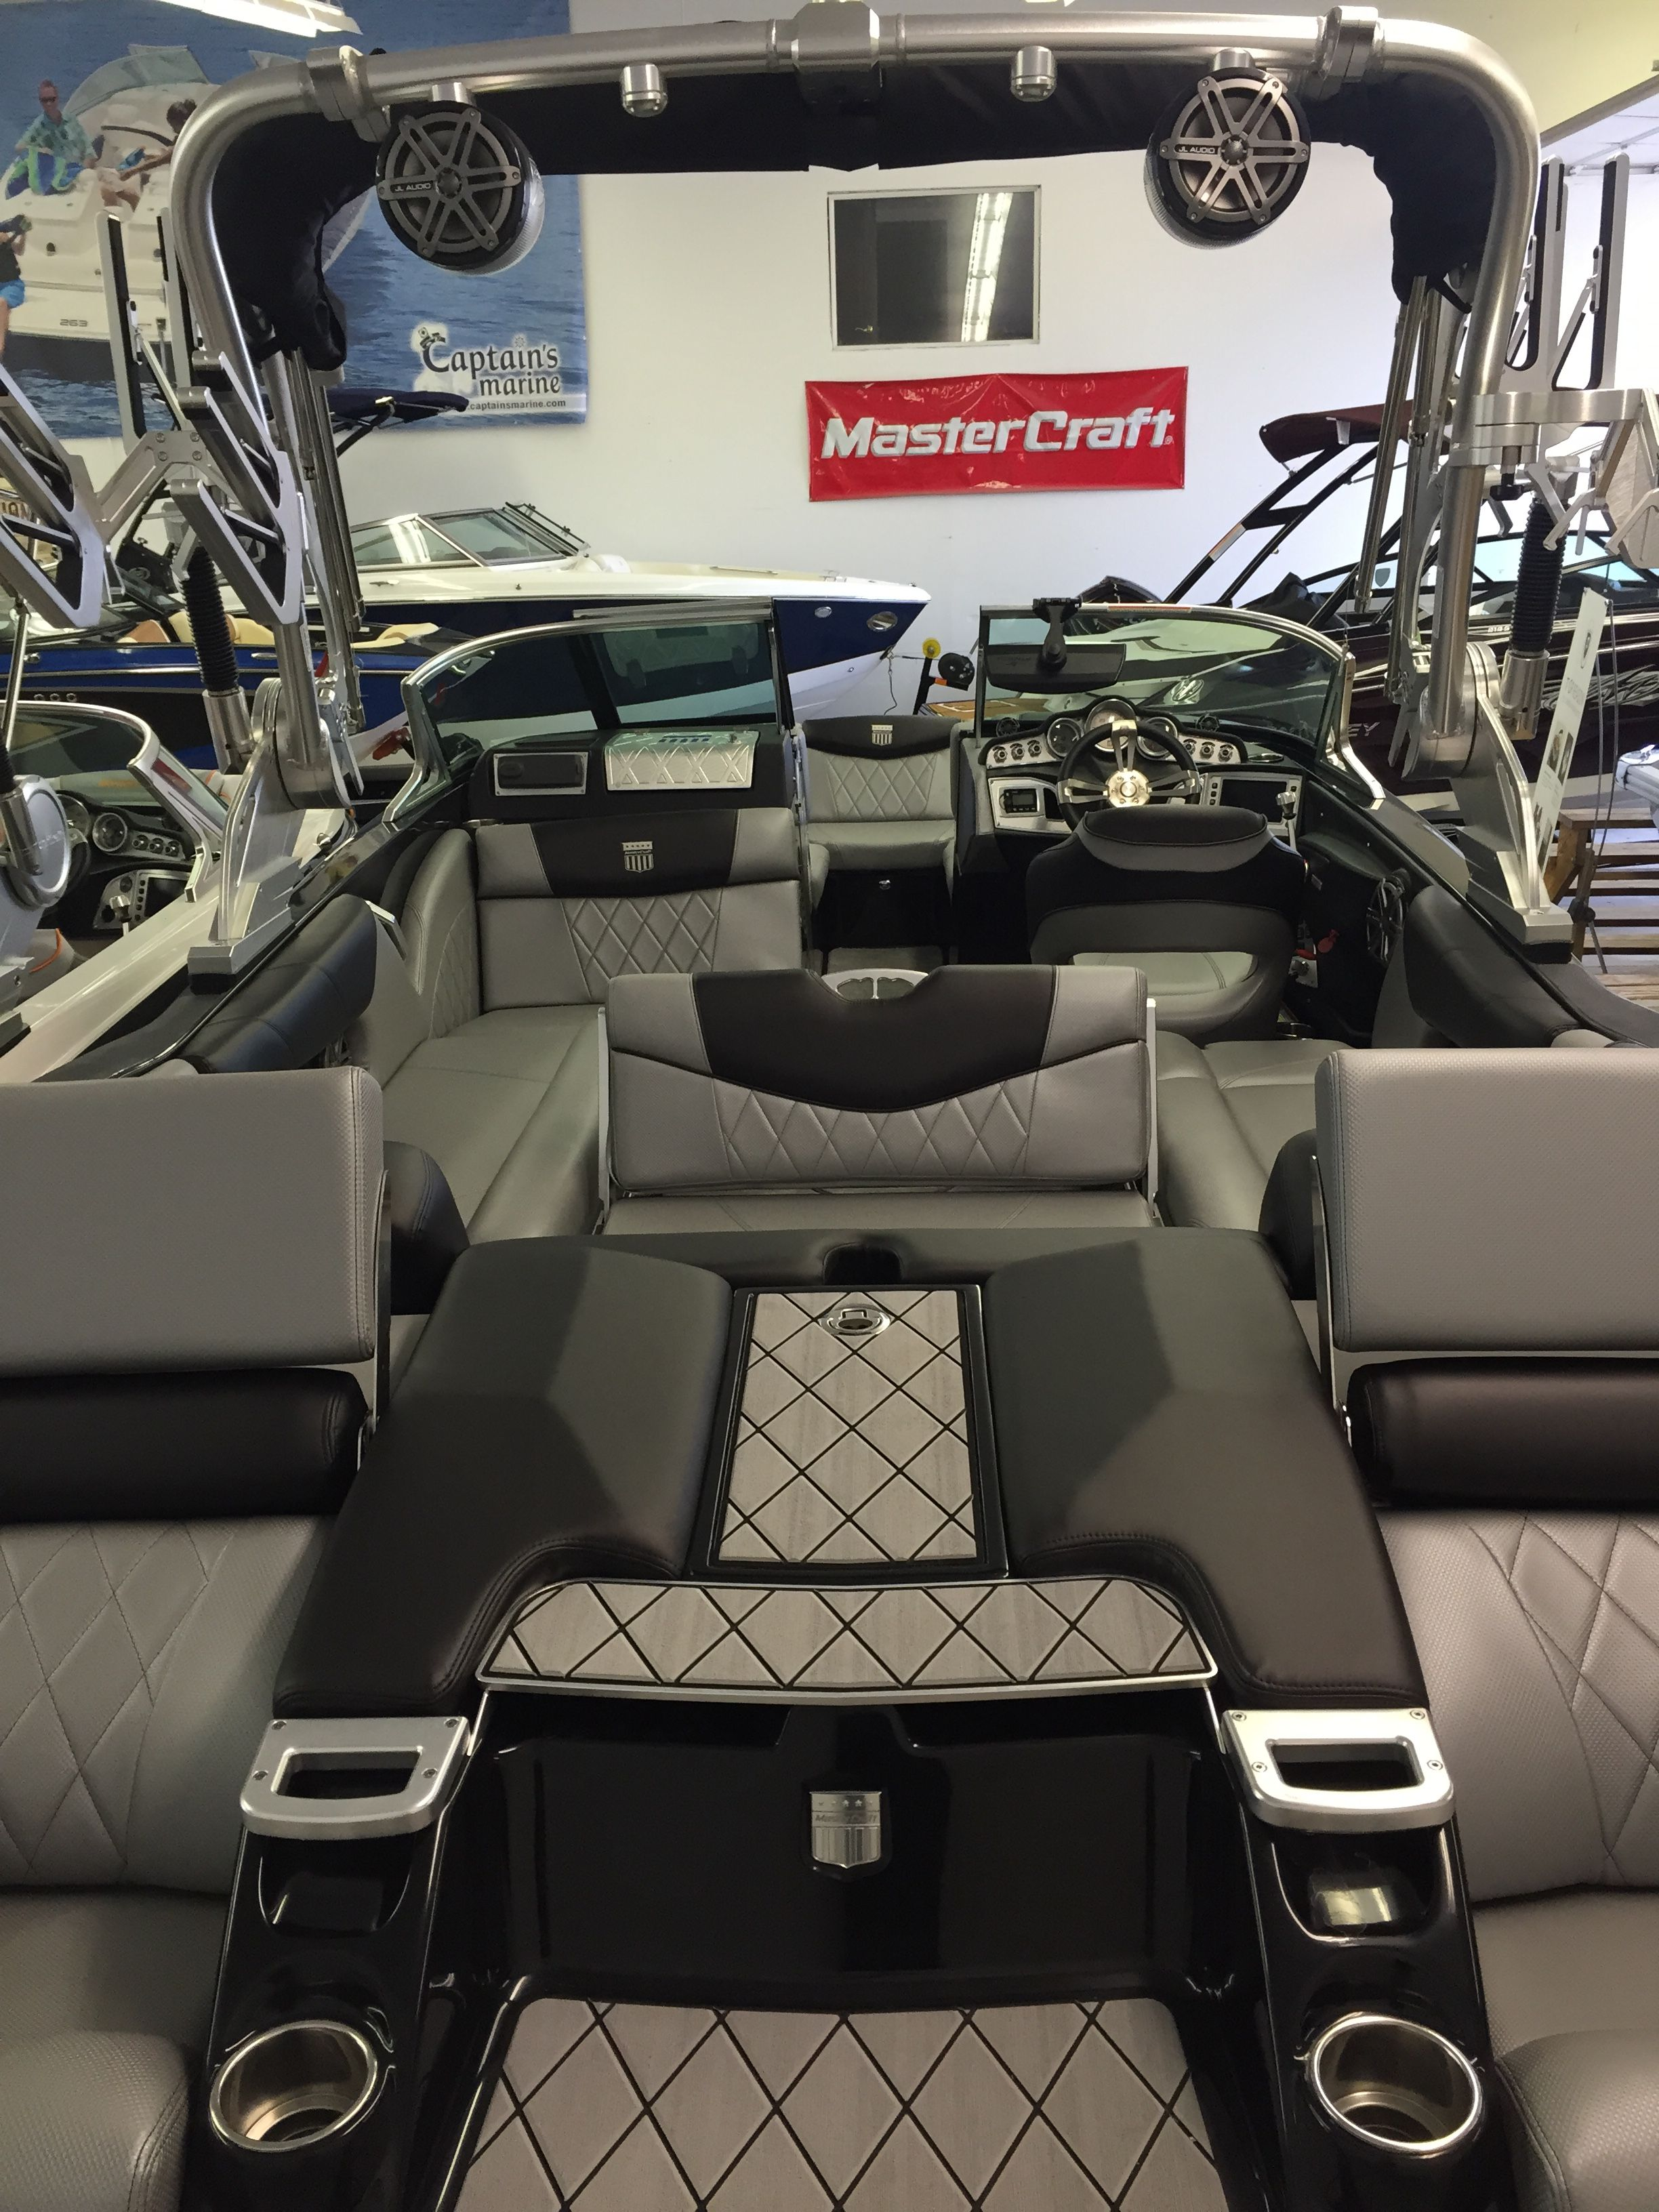 2015 mastercraft x23 interior view vroom vroom pinterest